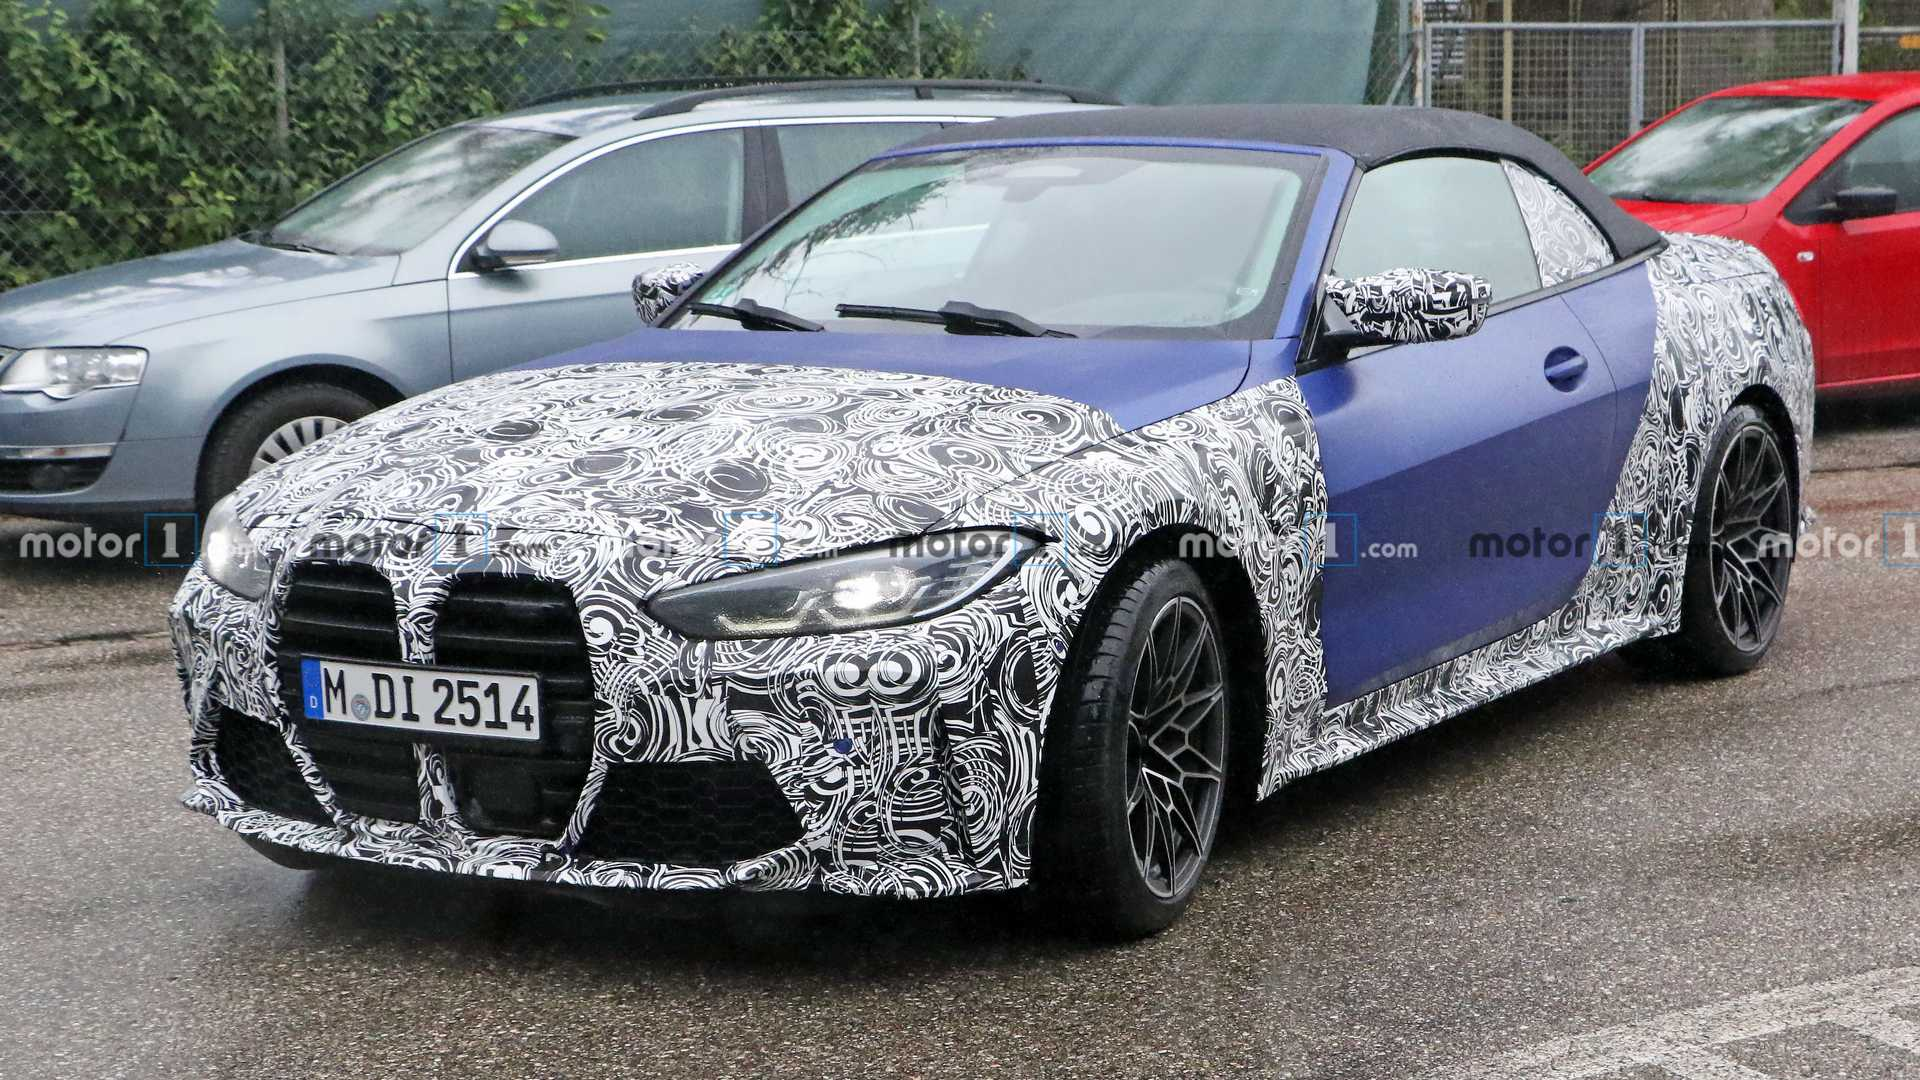 3 BMW M3 Convertible Spied With Predictably Controversial Design